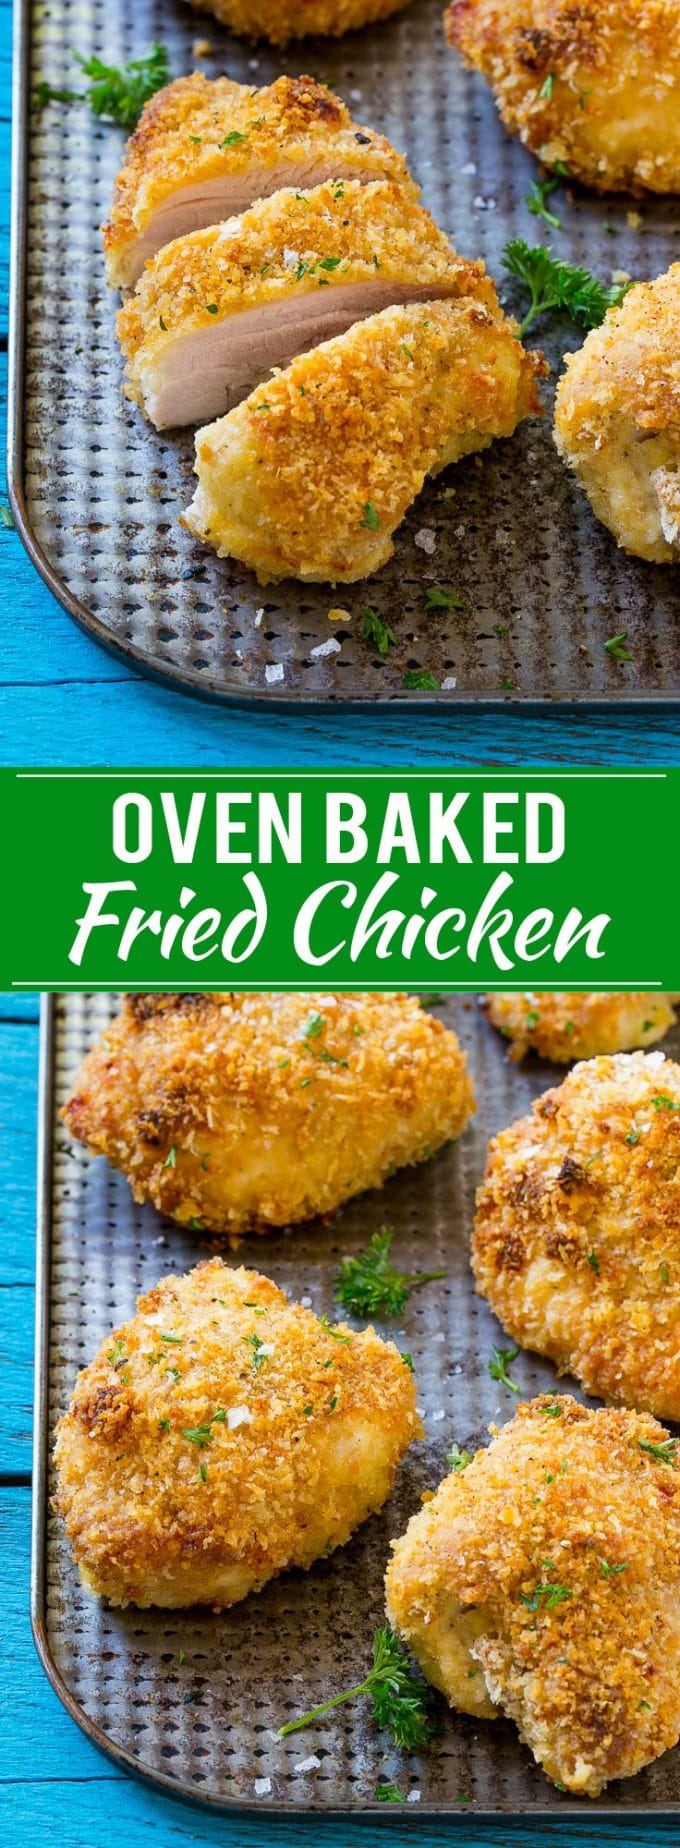 Baked Fried Chicken Recipe | Oven Fried Chicken | Baked Chicken | Crispy Oven Fried Chicken | Healthy Chicken Recipes | Chicken Recipes